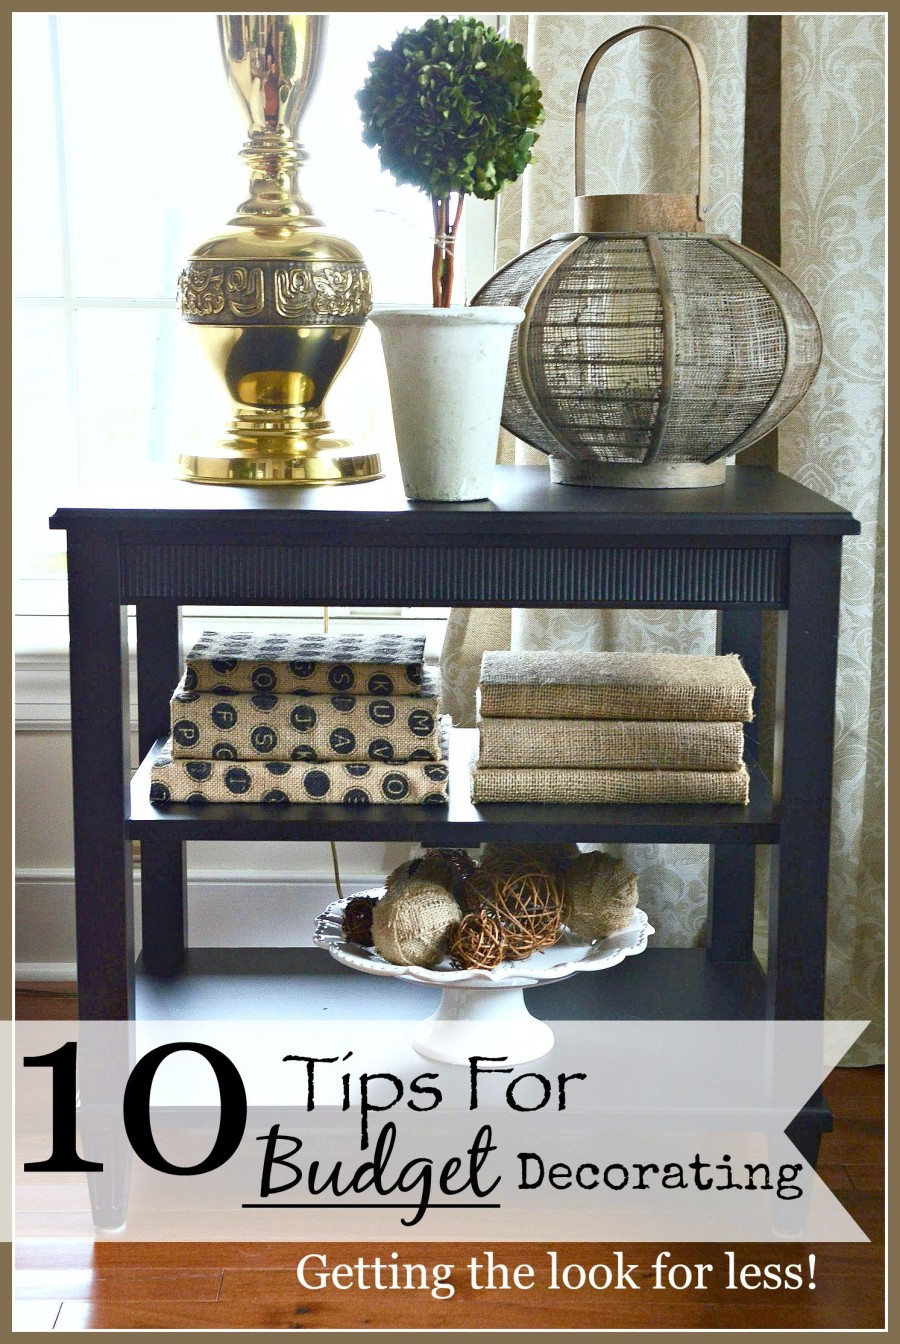 10 TIPS FOR DECORATING ON A BUDGET-Getting the look you love for less!-stonegableblog.com